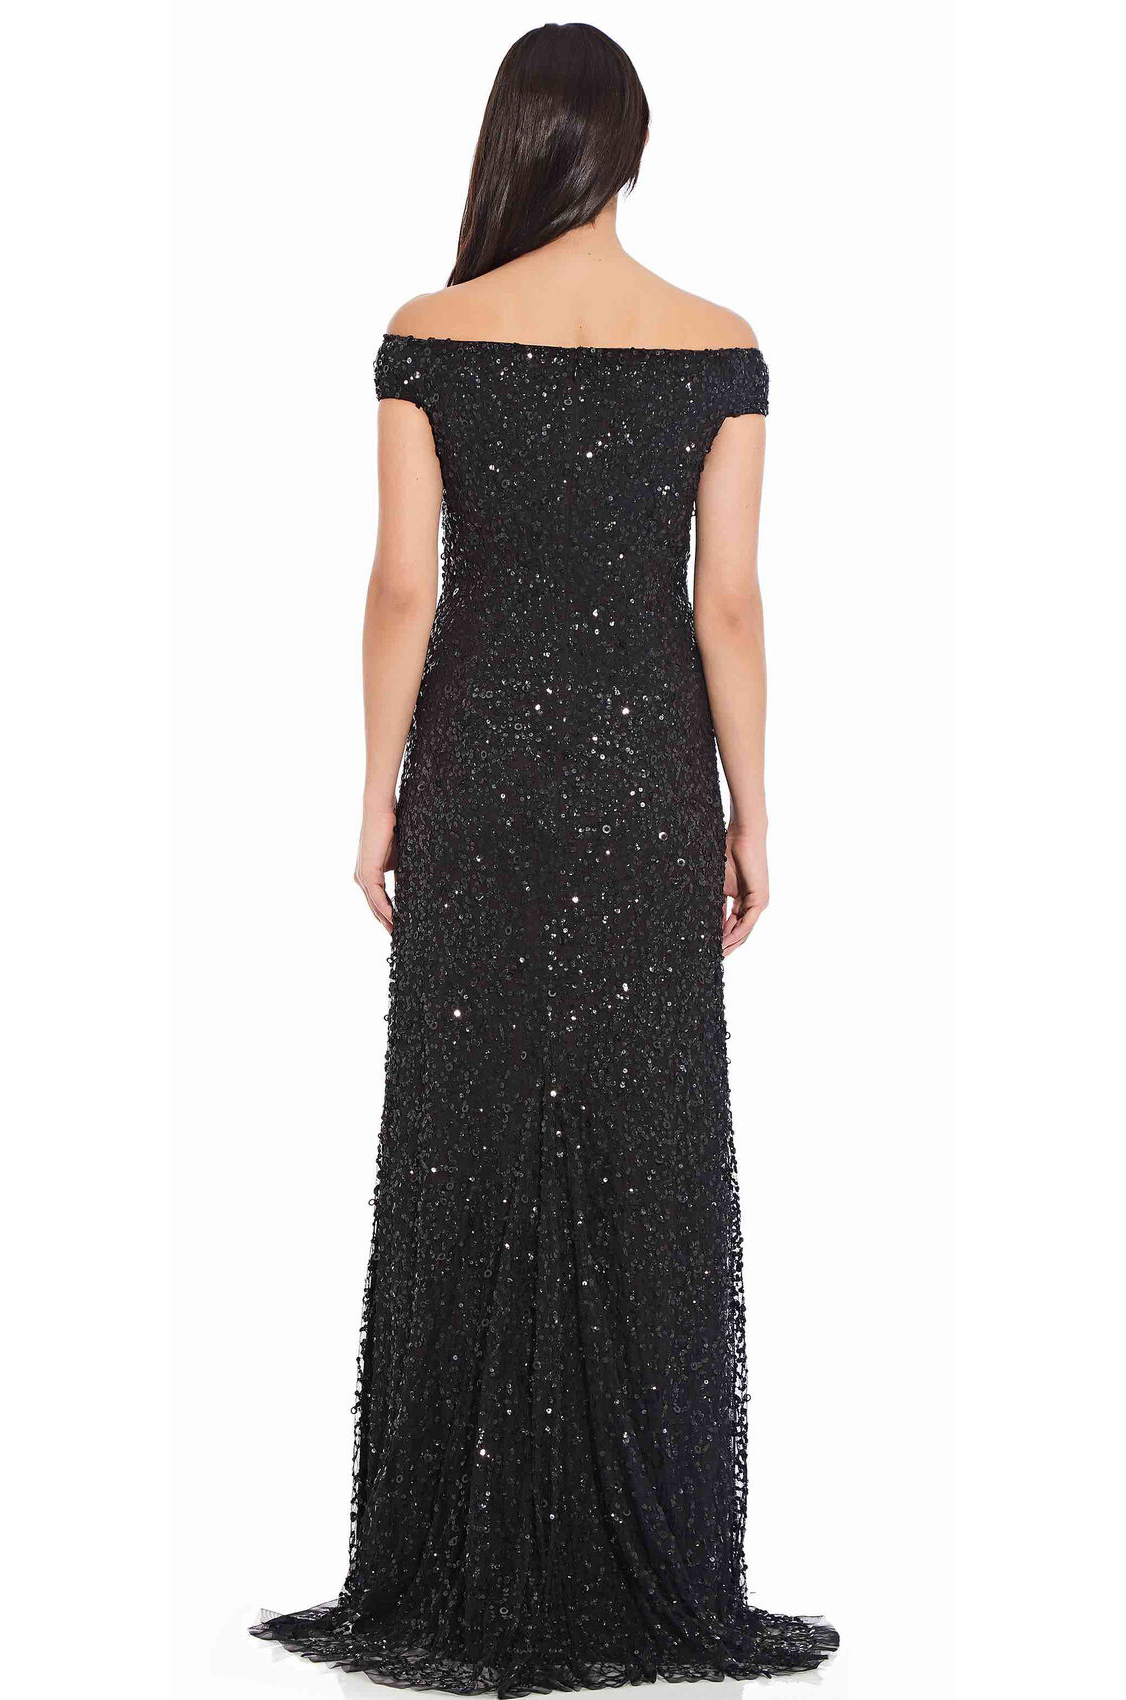 Lillian Off the Shoulder Sequin Beaded Gown By Adrianna Papell - Black